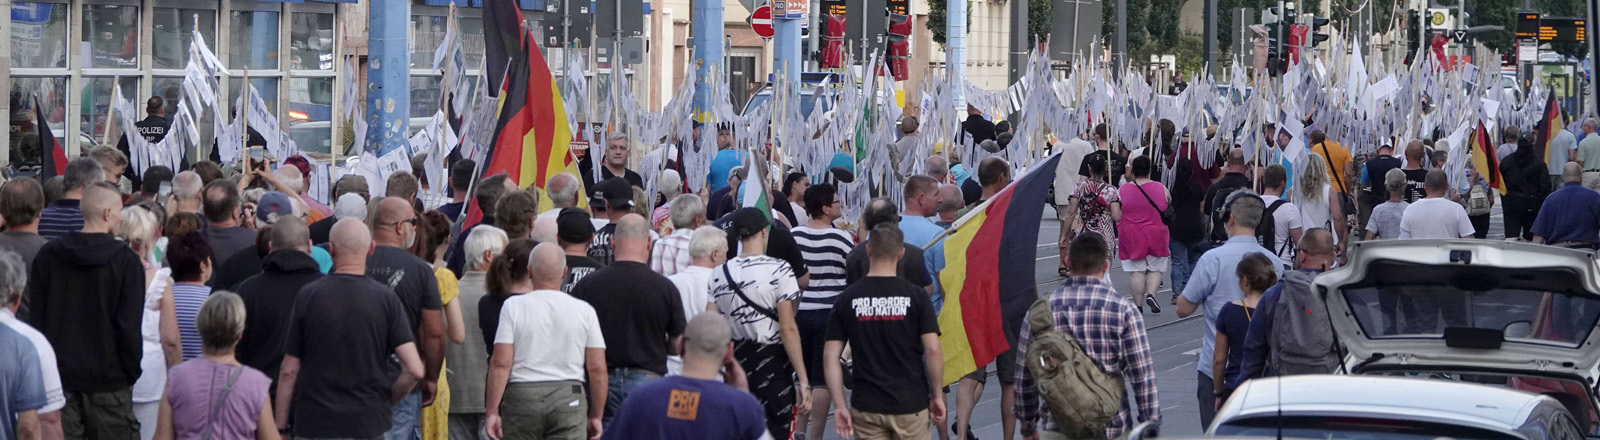 Demo in Chemnitz am 25.08.19